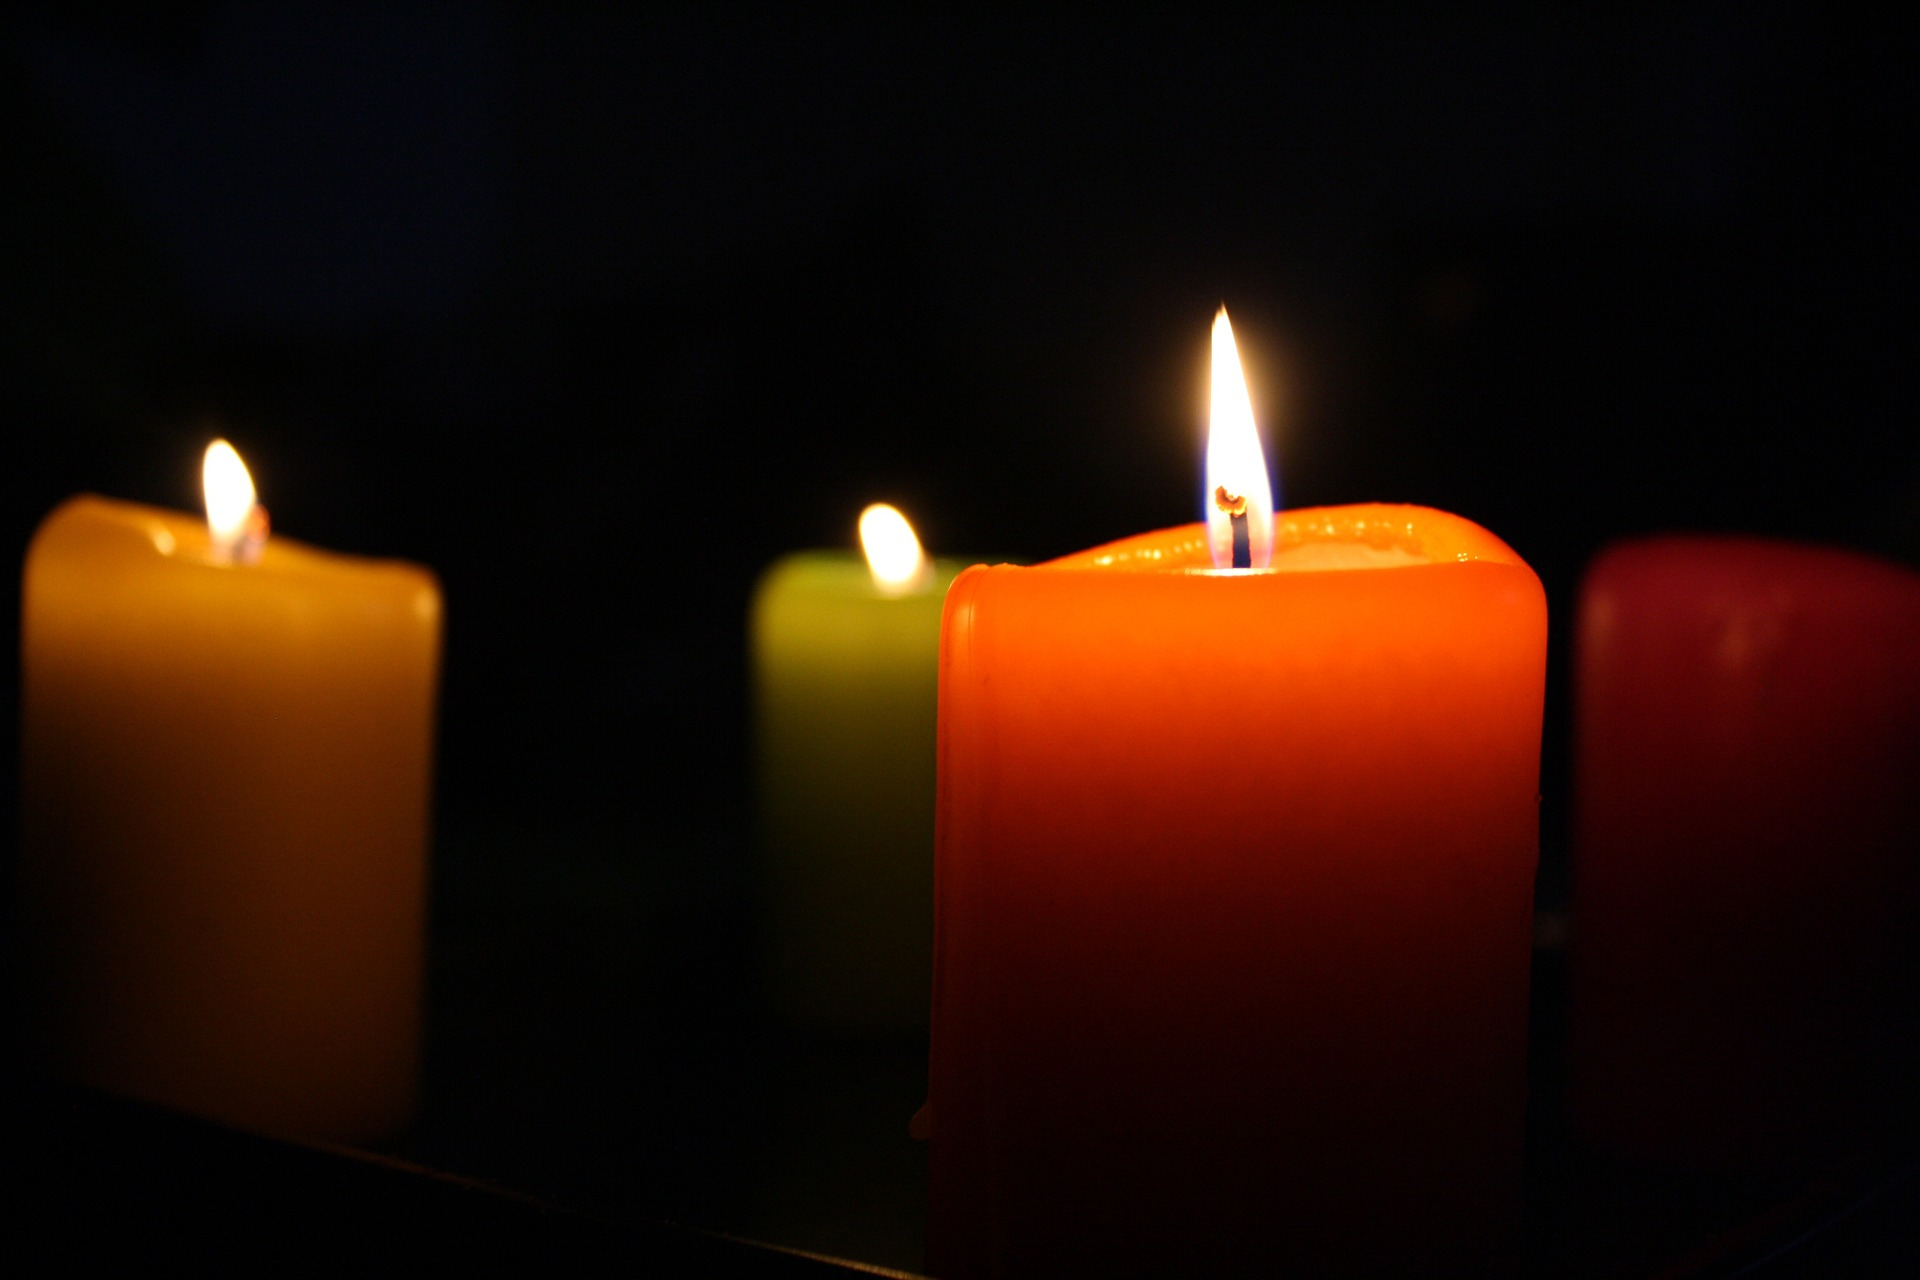 candle, candles, pillar candle, burning candle, candle light, flame, wax, wax candle, paraffin wax, petroleum product of the week, how are candles made?, what are candles made from?, are candles a petroleum product?, industrial outpost